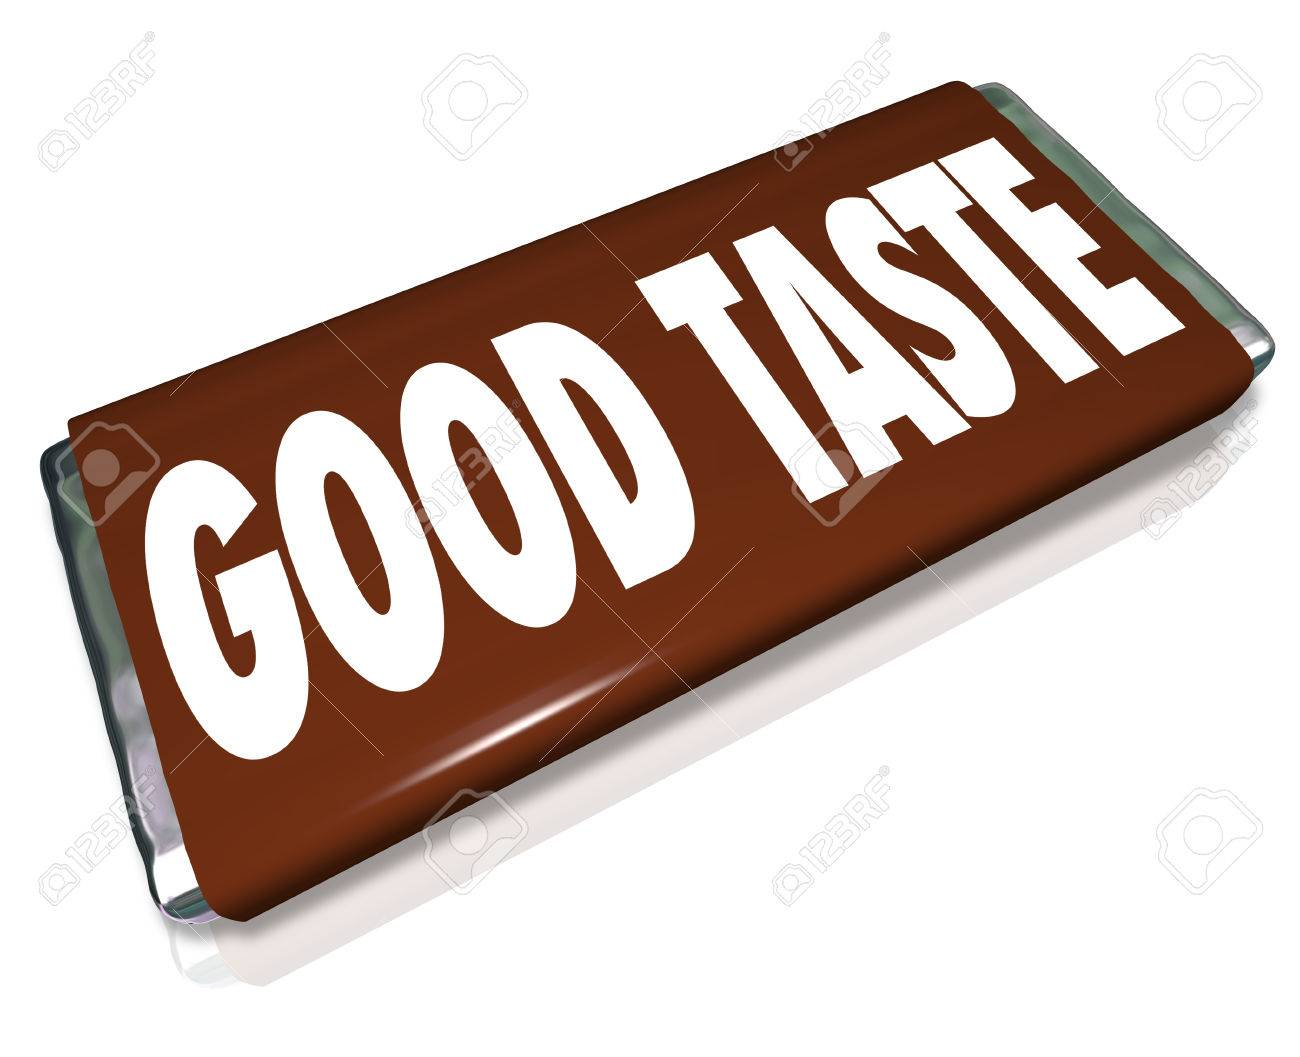 a brown chocolate candy bar wrapper with the words good taste to illustrate someone with flair